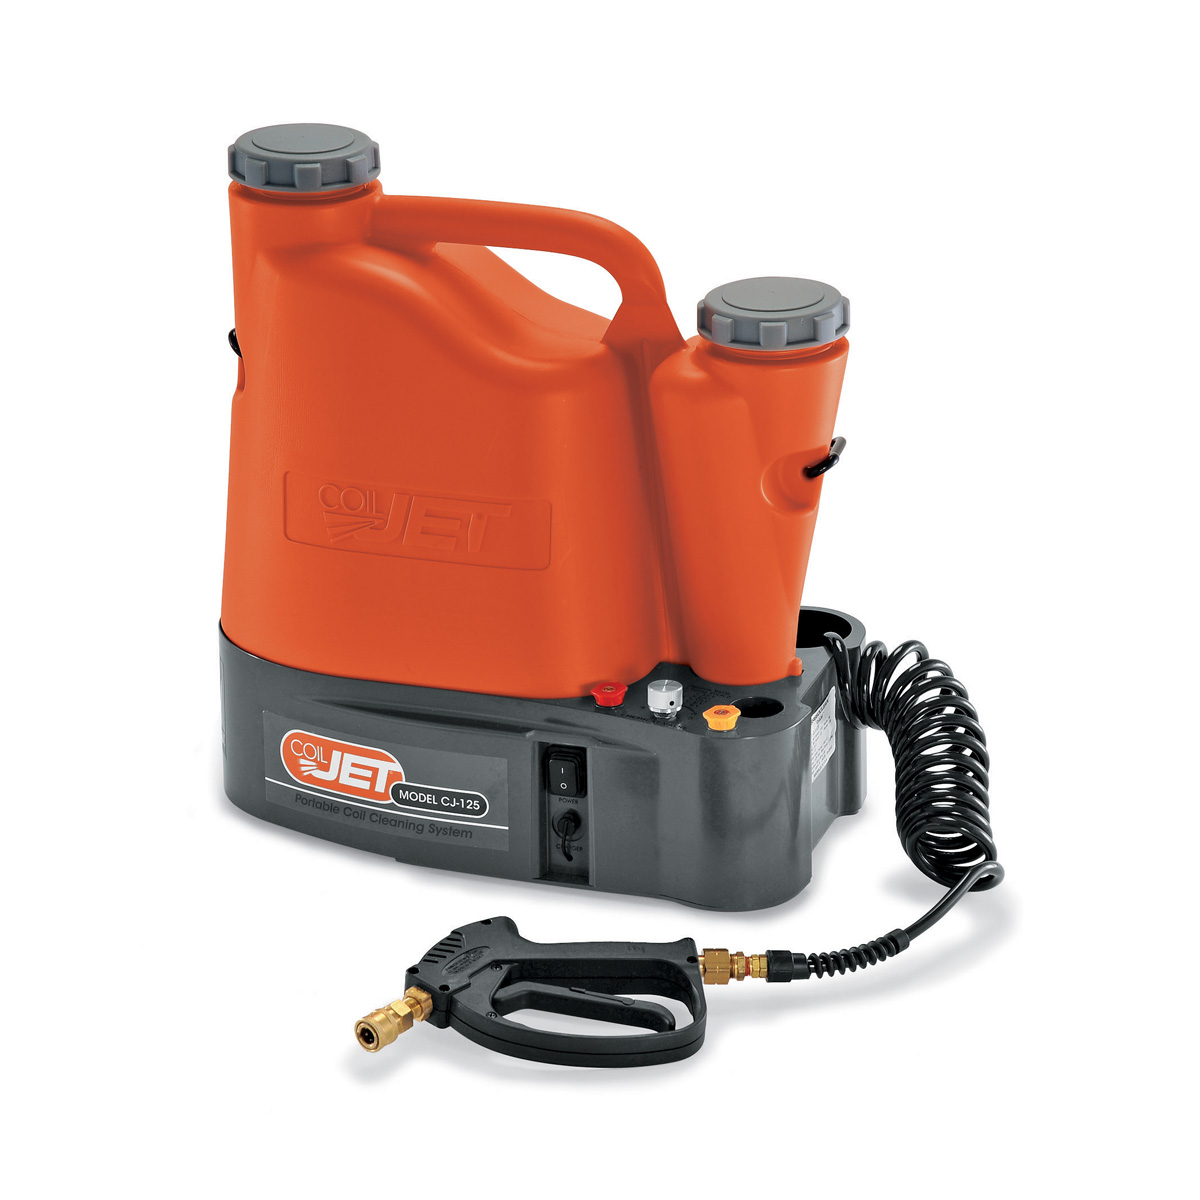 Coiljet Coil Cleaner System Hvac Coil Cleaner Speedclean